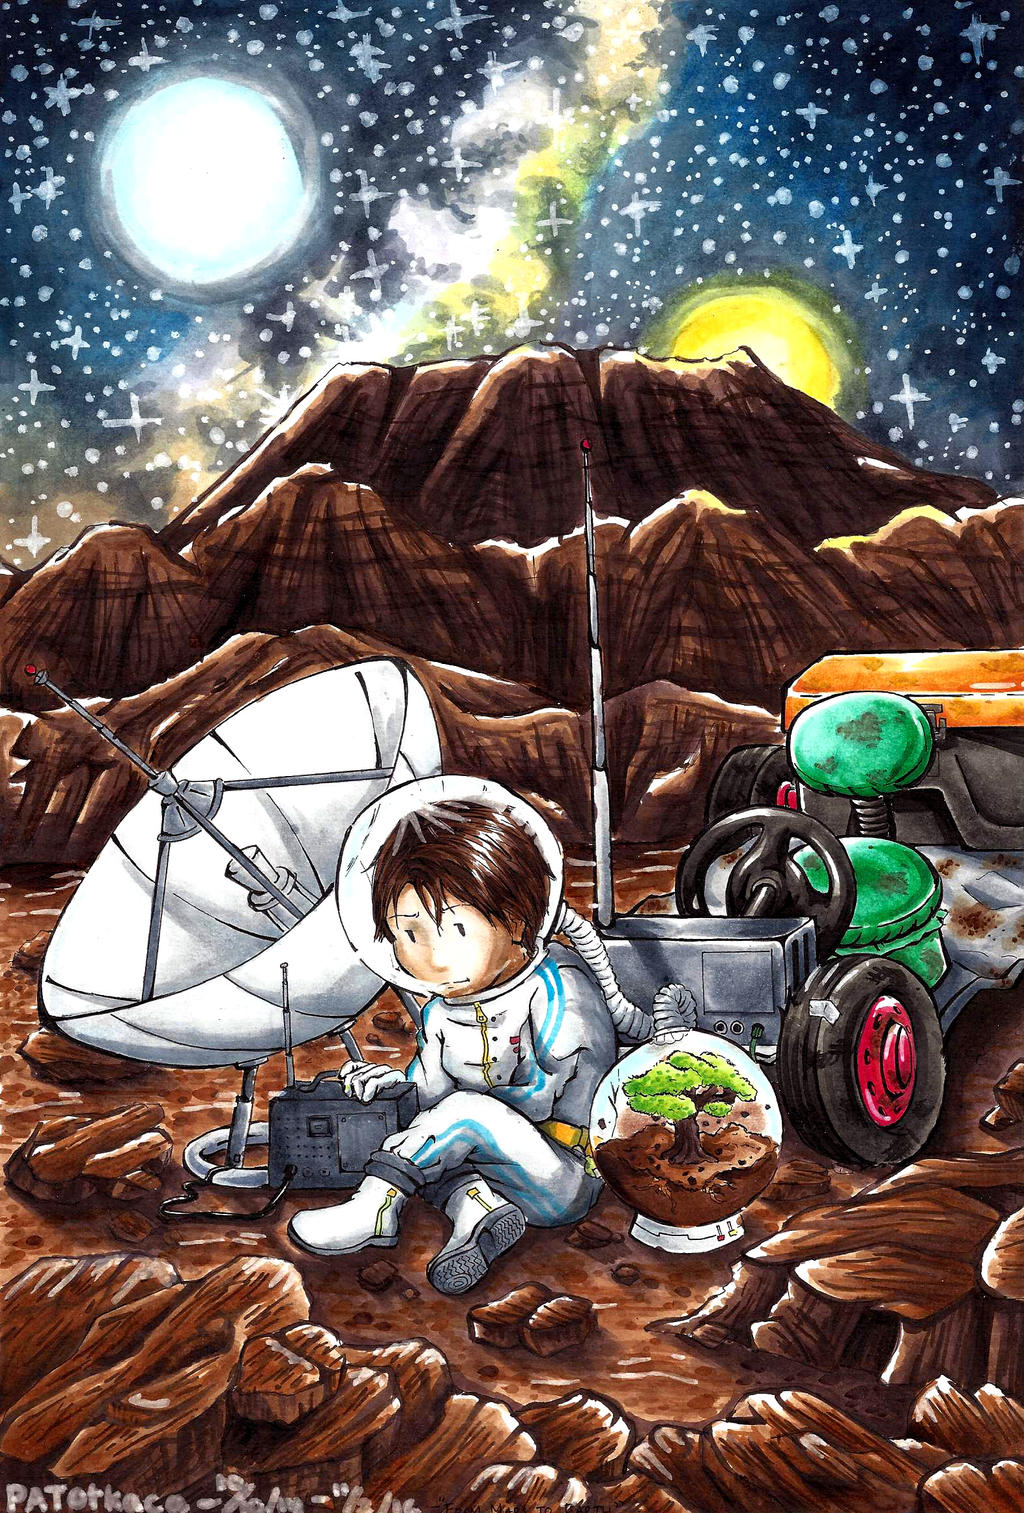 From Mars to Earth by PATotkaca